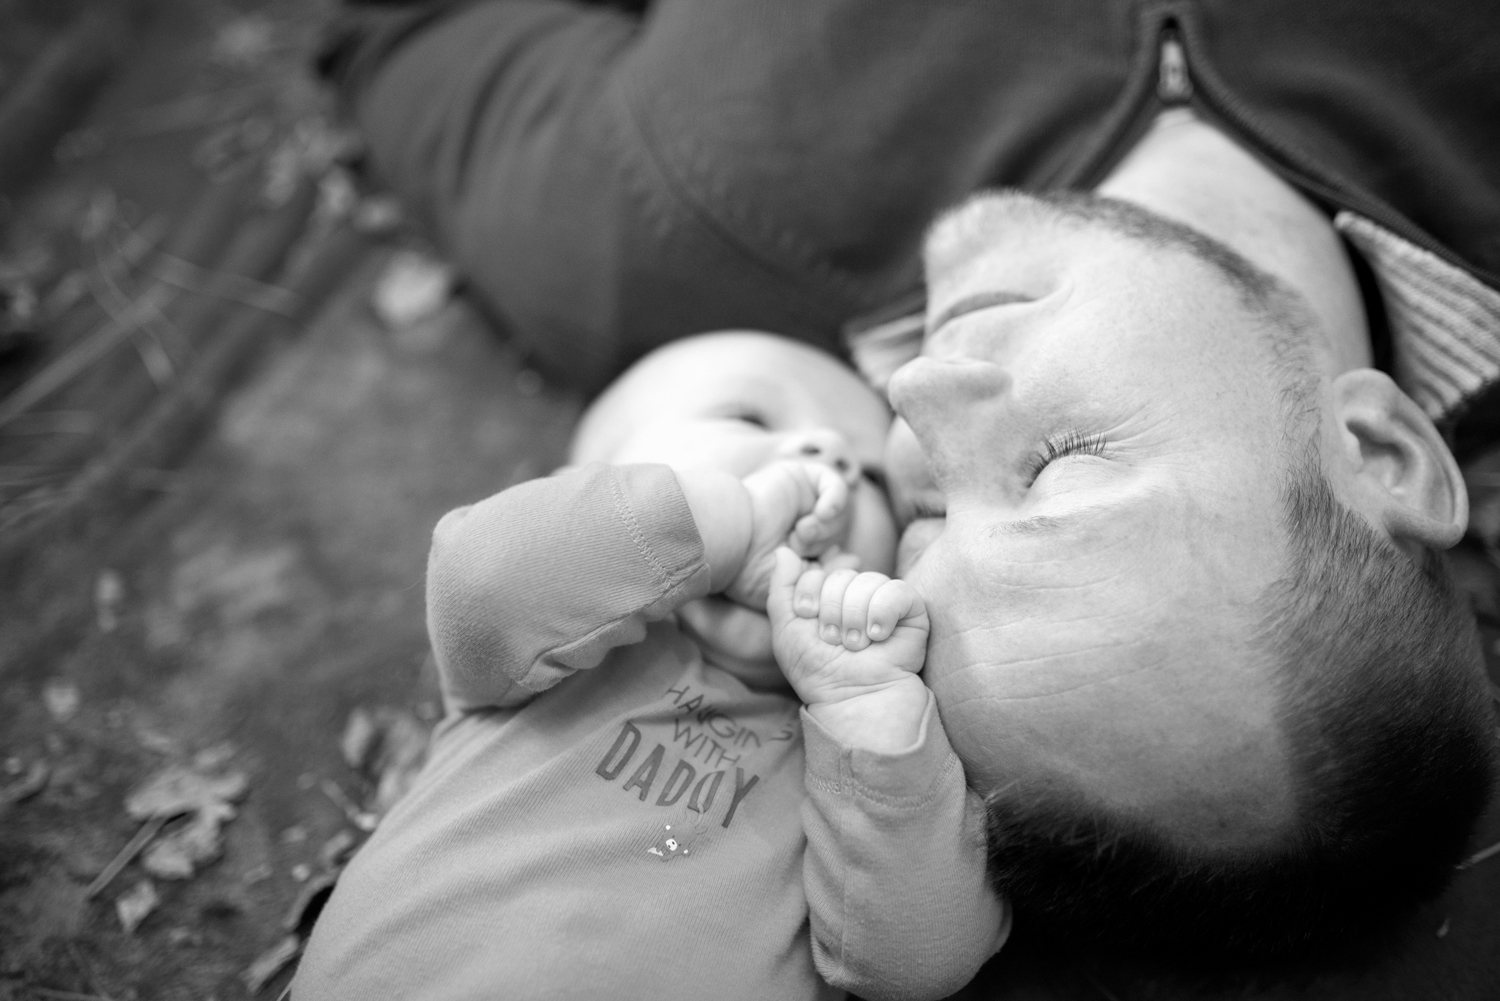 Family picture ideas for dad and his son (black and white)